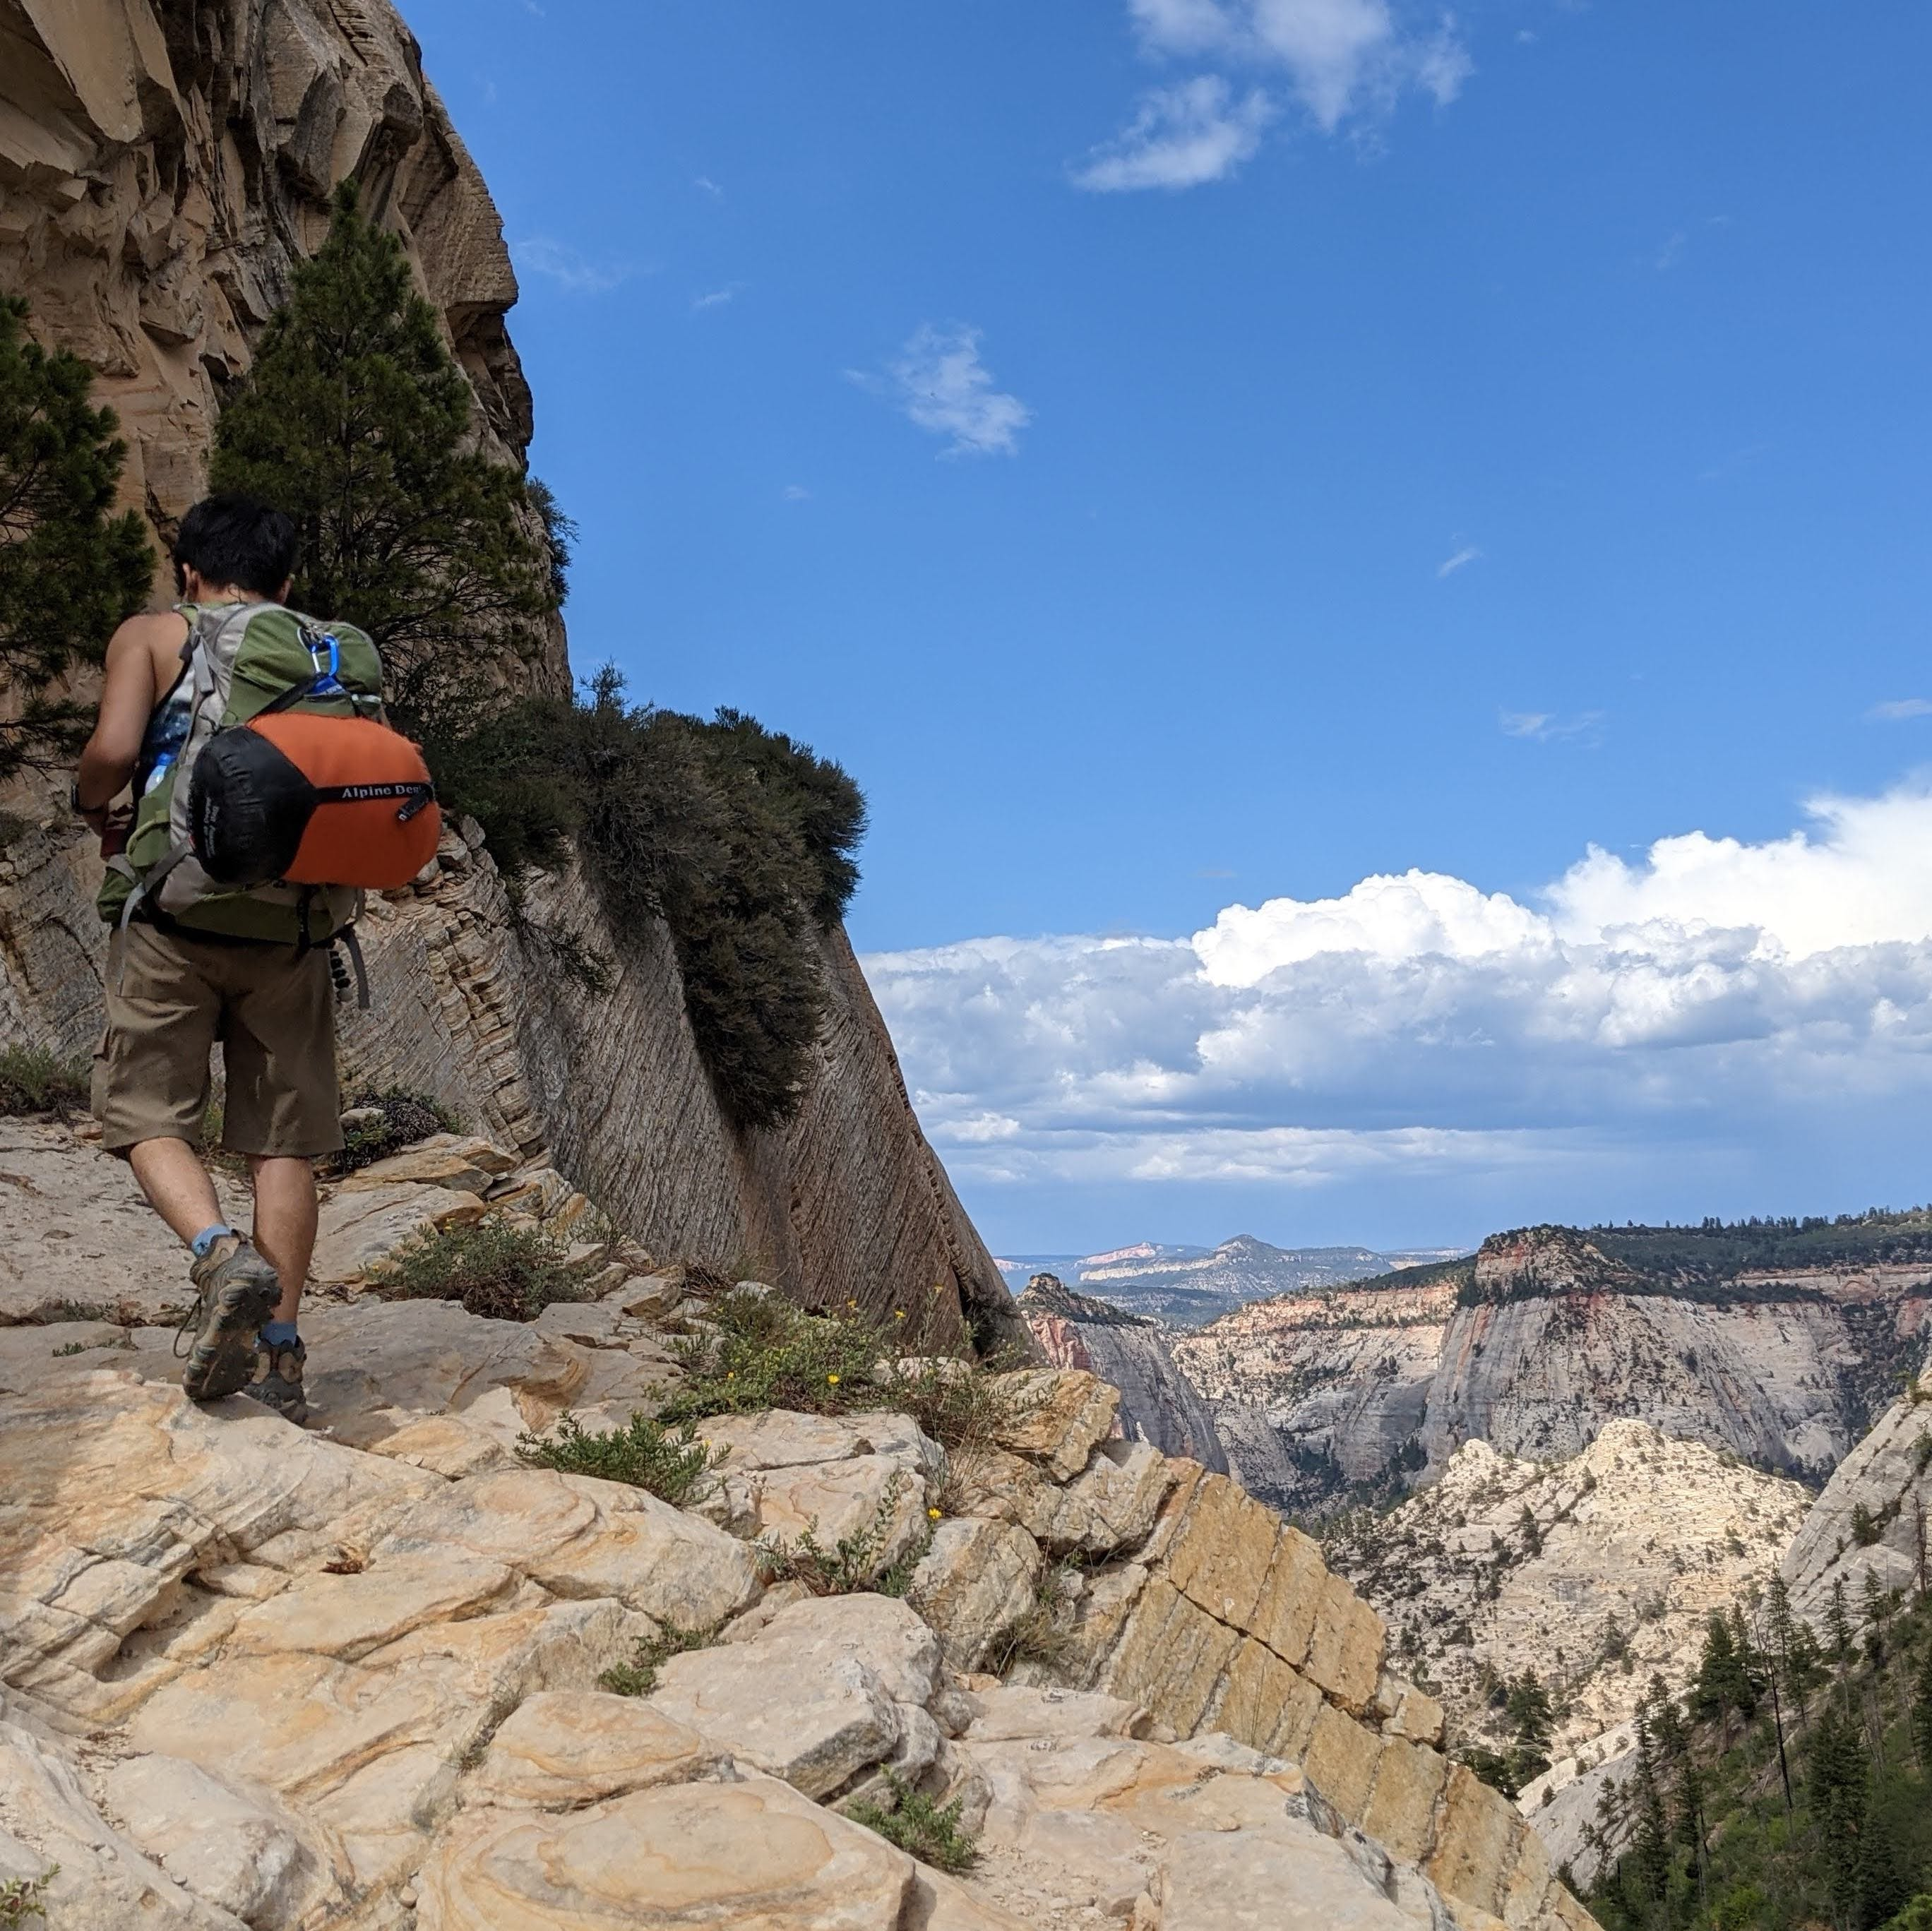 Backpacker on West Rim Trail in Zion National Park